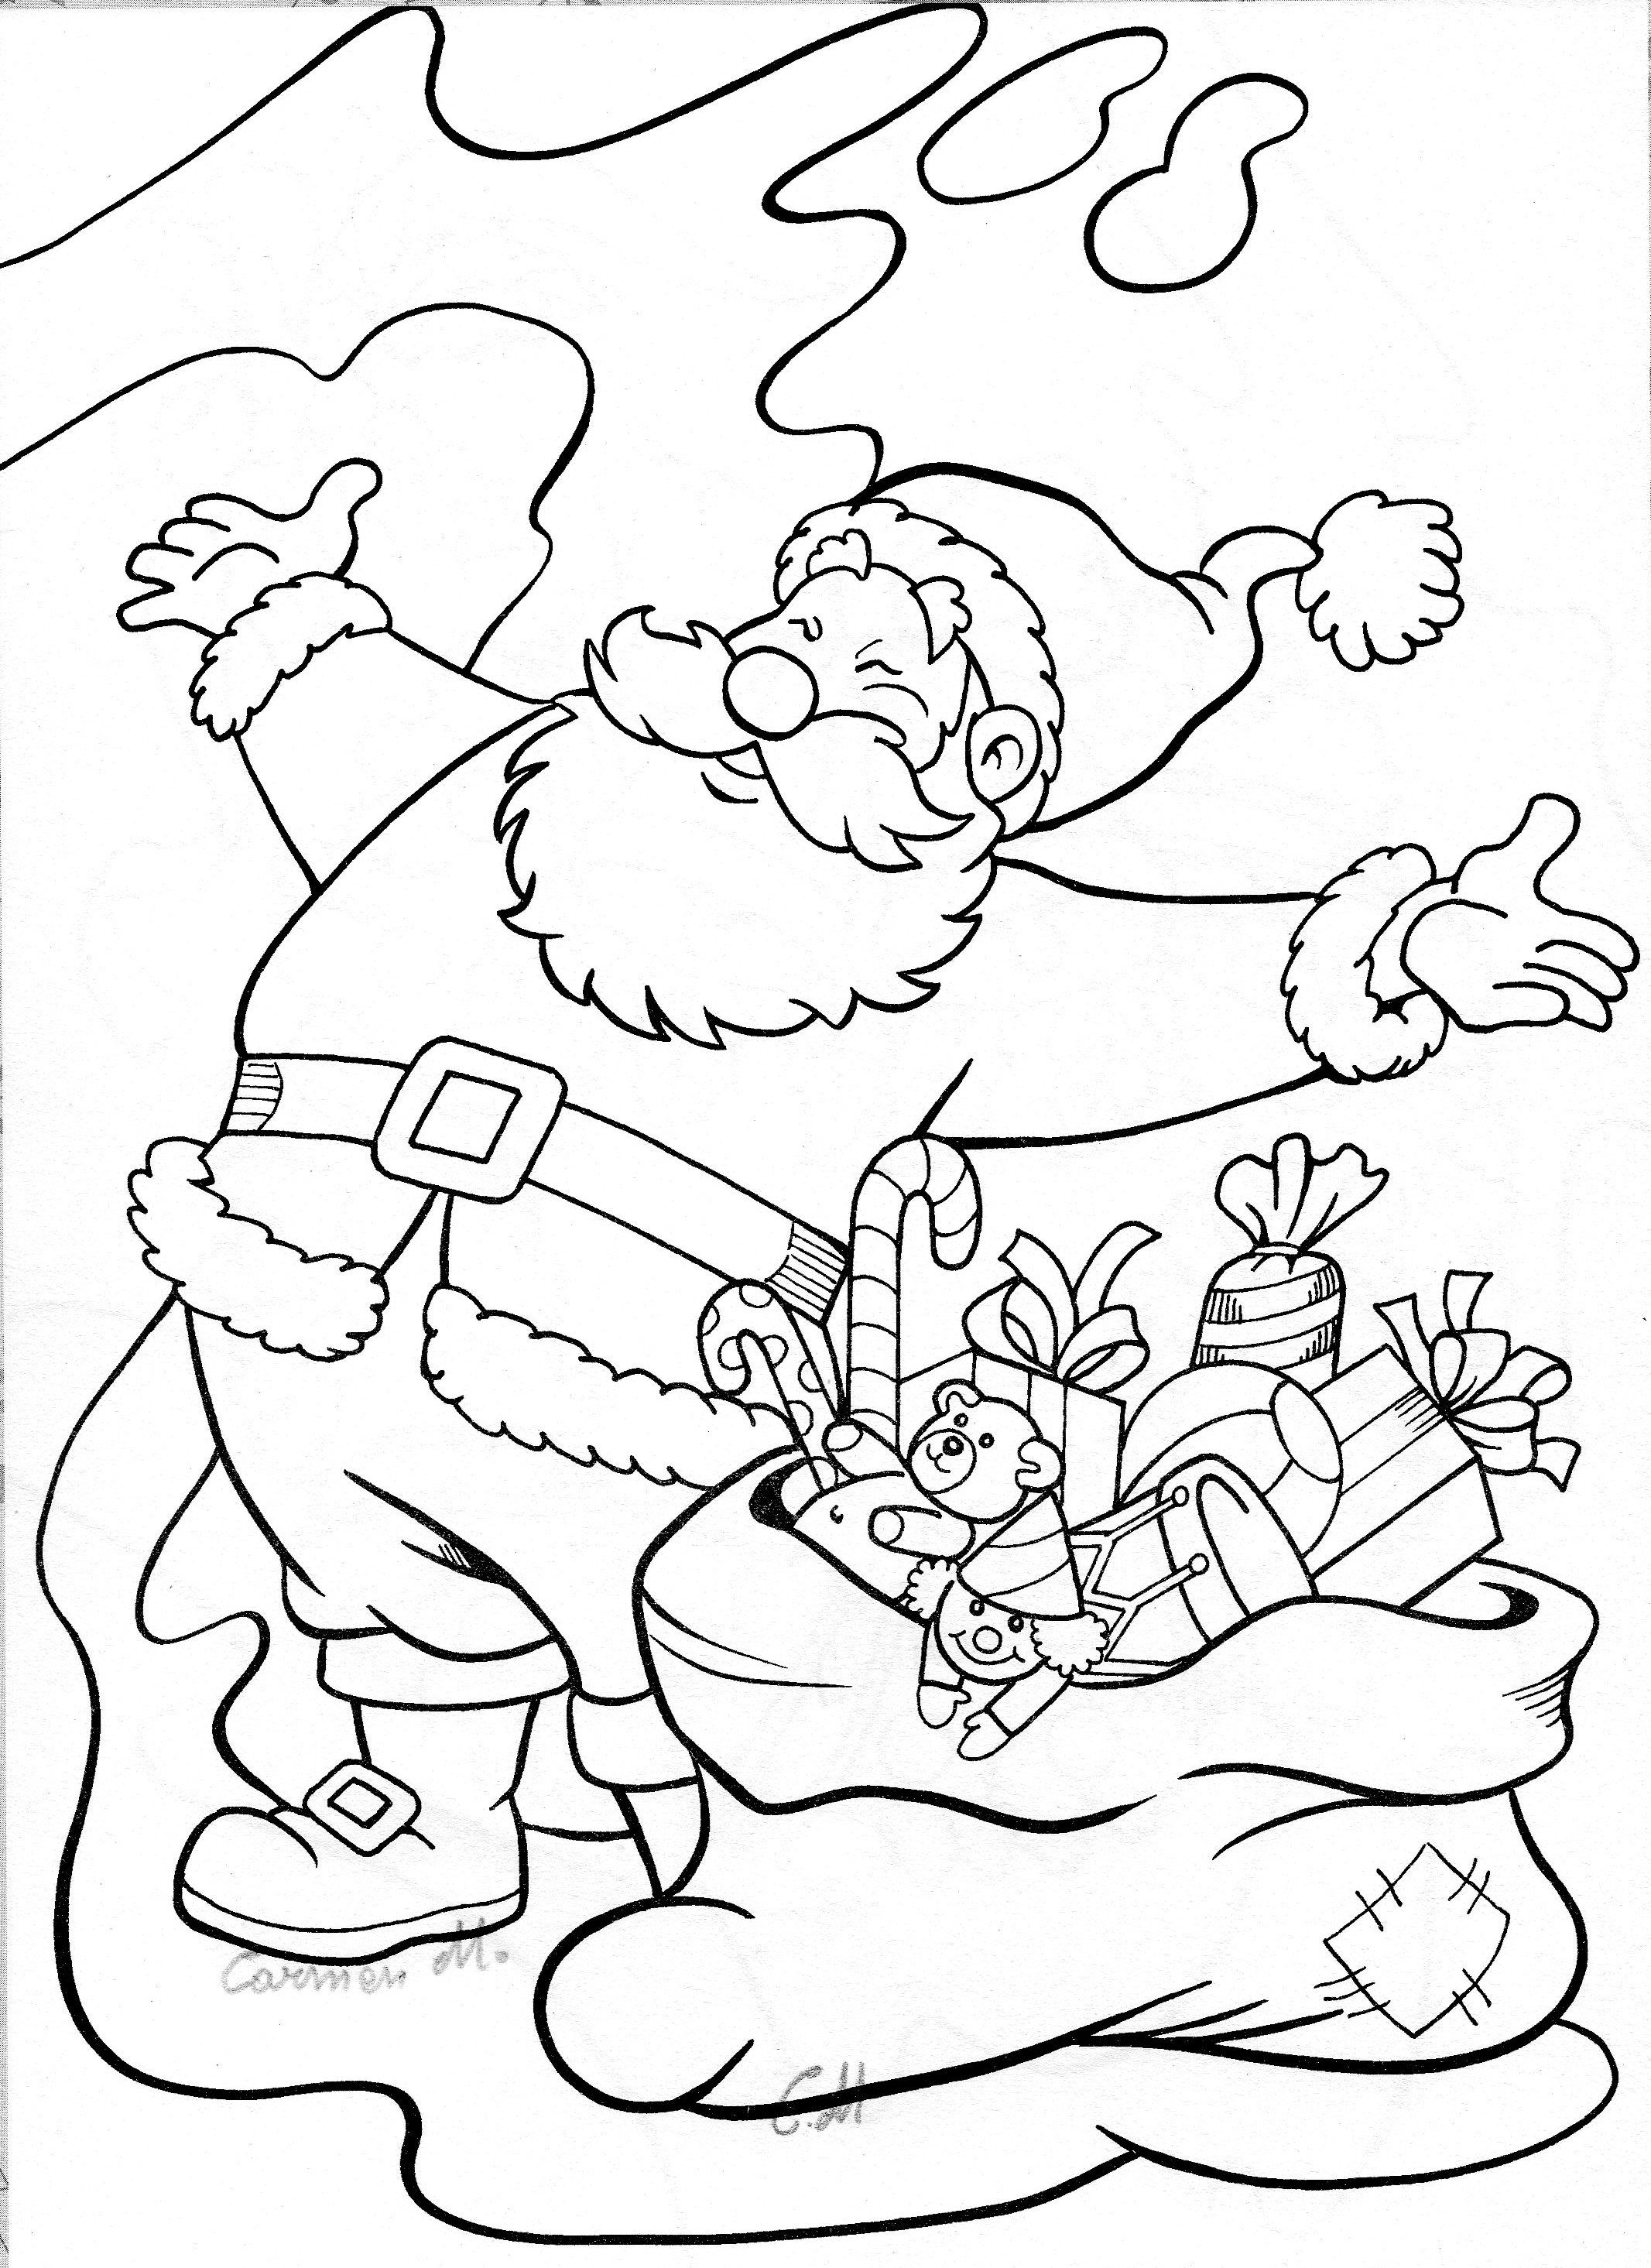 Santa Claus Coloring Page Owl Coloring Pages Bird Coloring Pages Christmas Coloring Page